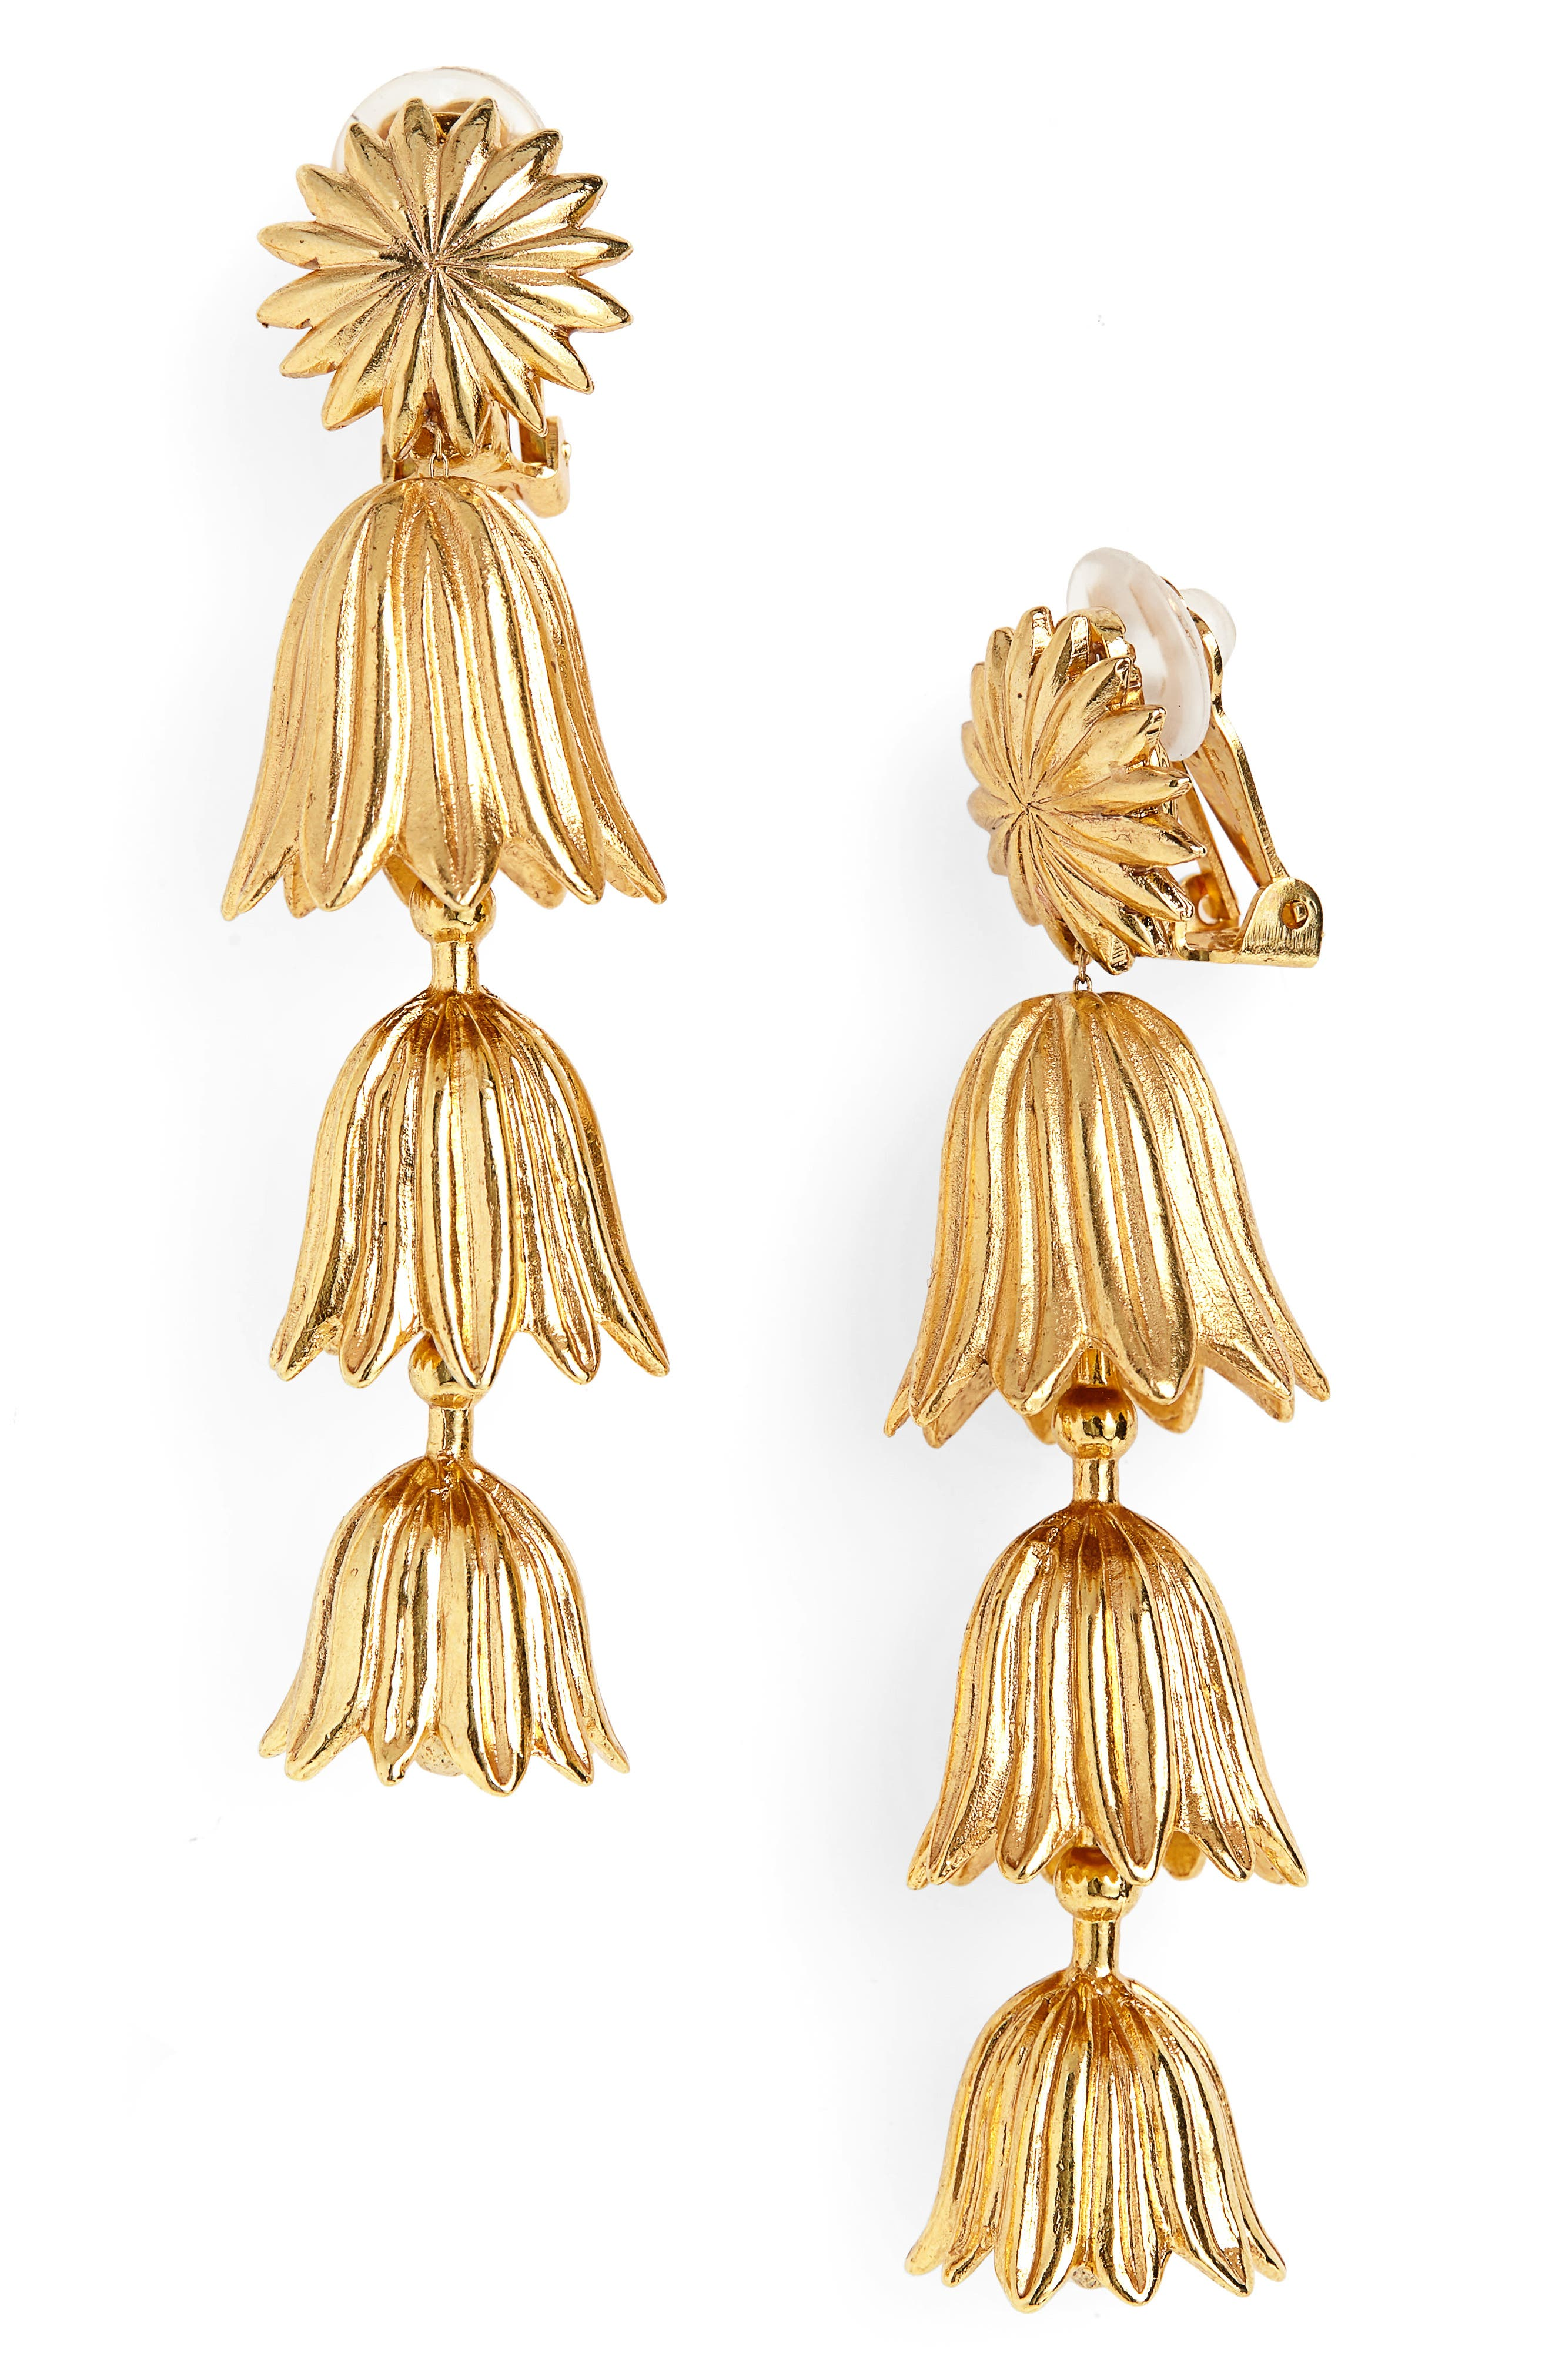 Tiered Flower Clip Earrings,                             Main thumbnail 1, color,                             GOLD